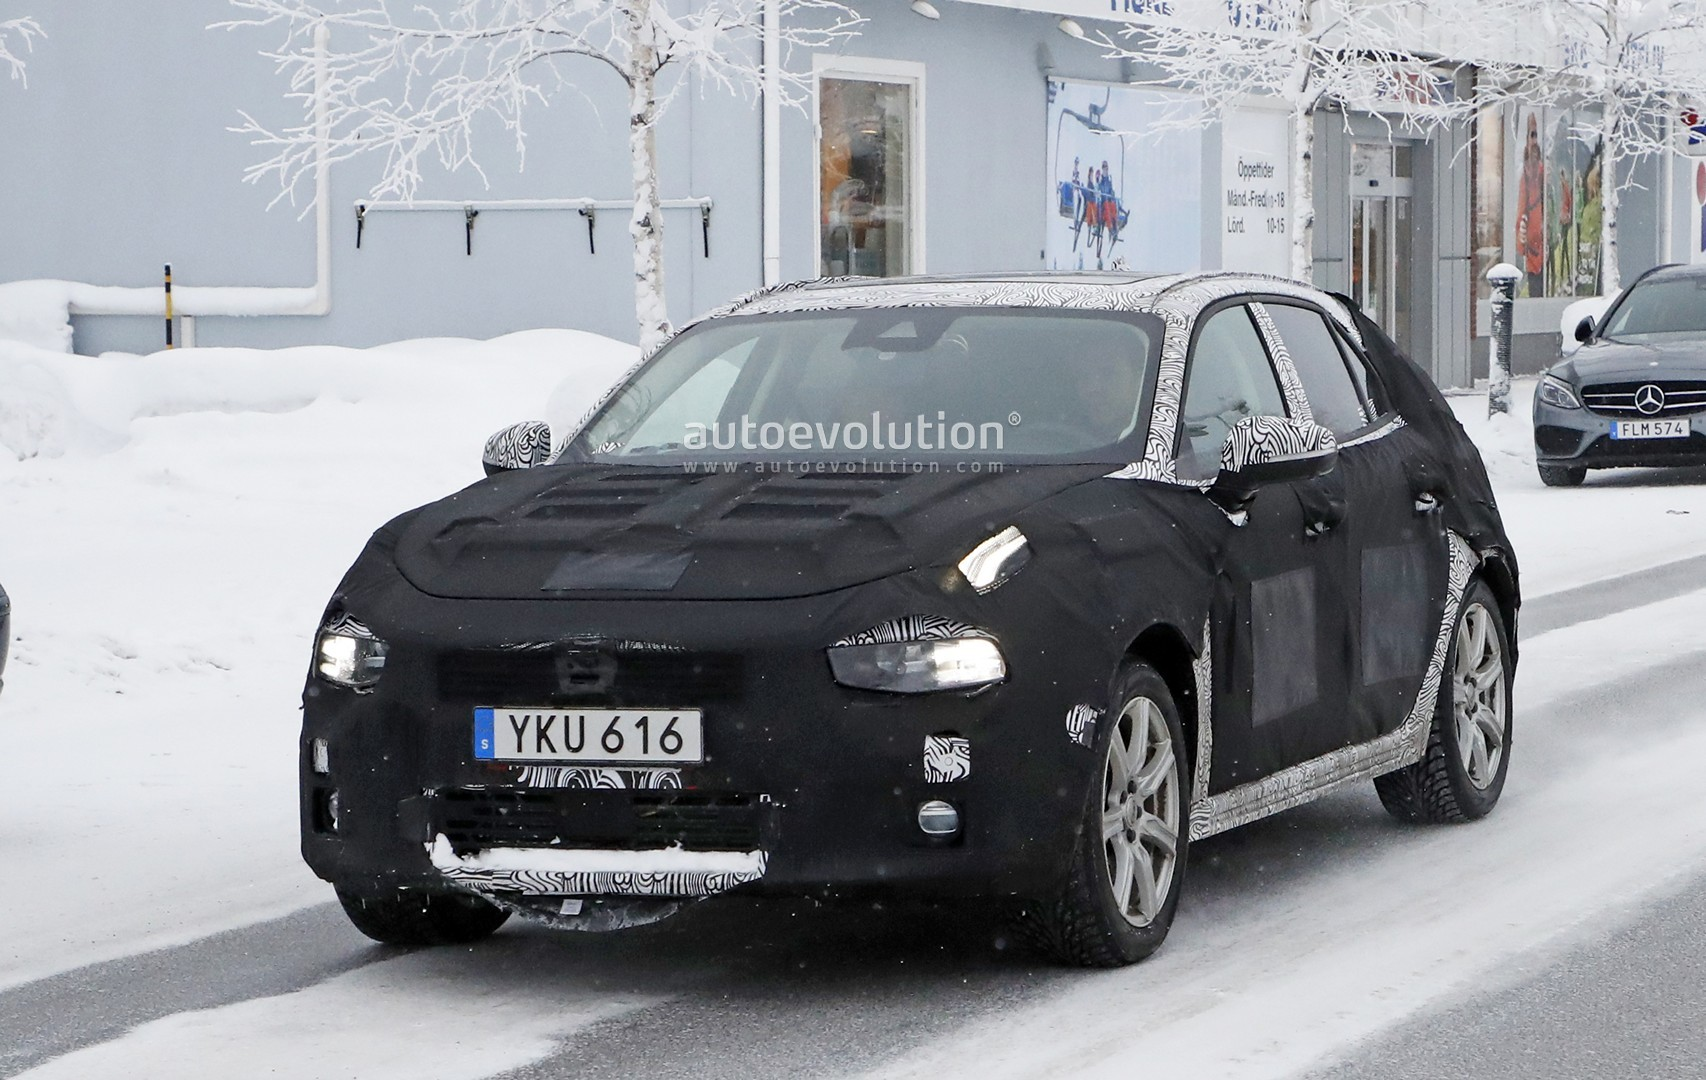 volvo's cma compact car plans new v40 in 2016 and xc40 in